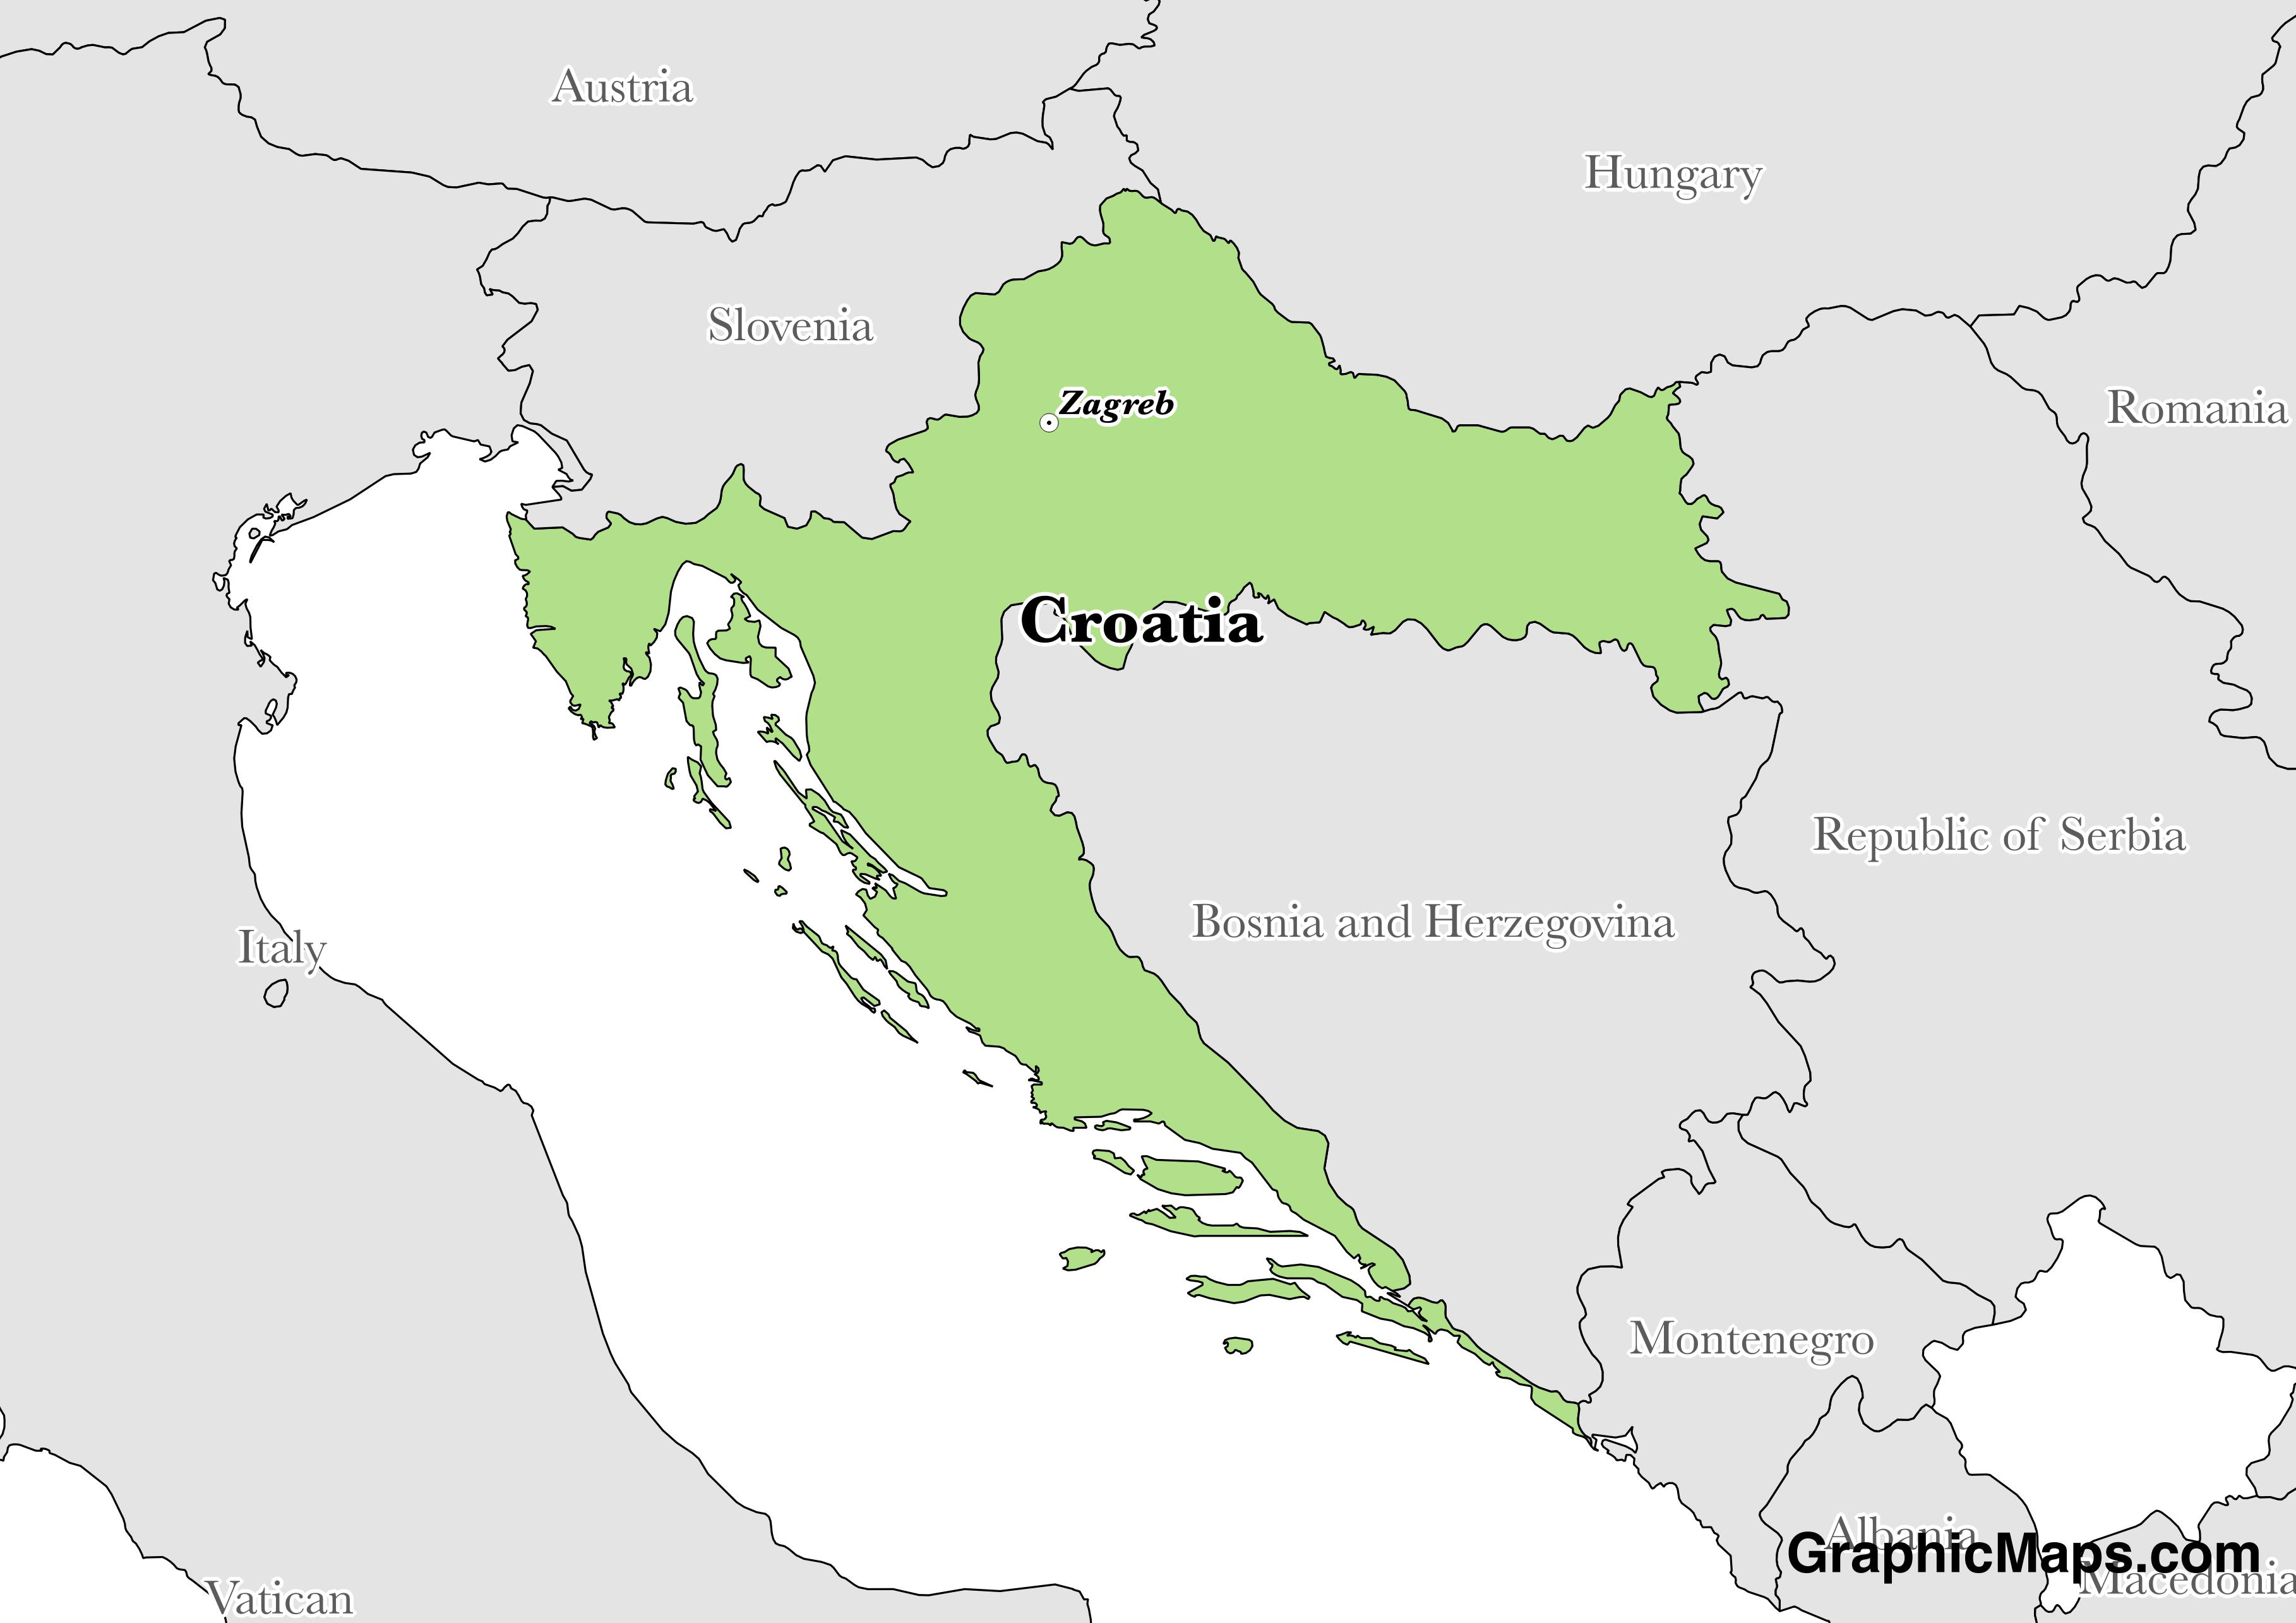 Map showing the location of Croatia